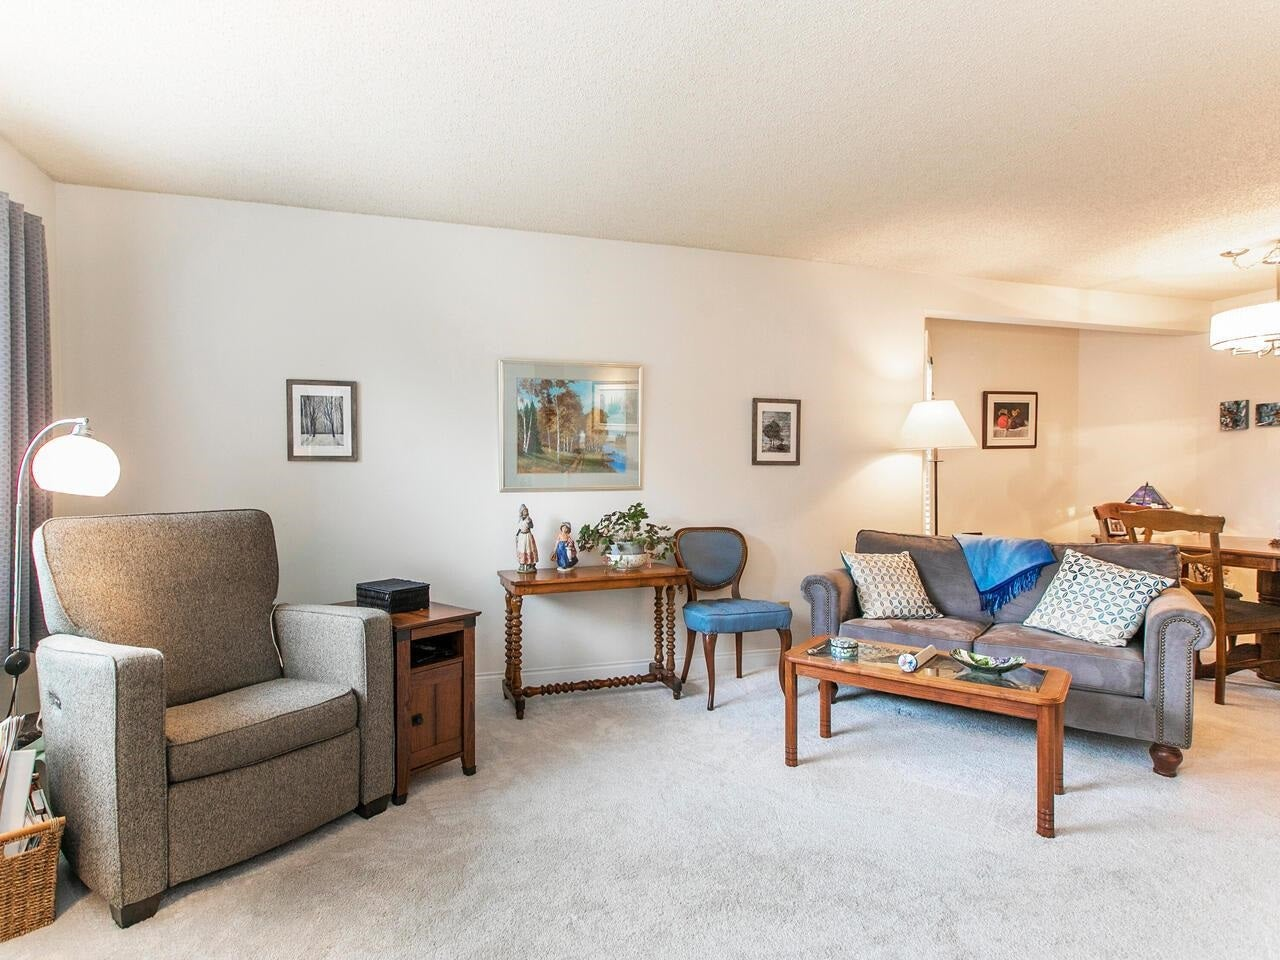 104 2800 CHESTERFIELD AVENUE - Upper Lonsdale Apartment/Condo for sale, 2 Bedrooms (R2603260) - #6